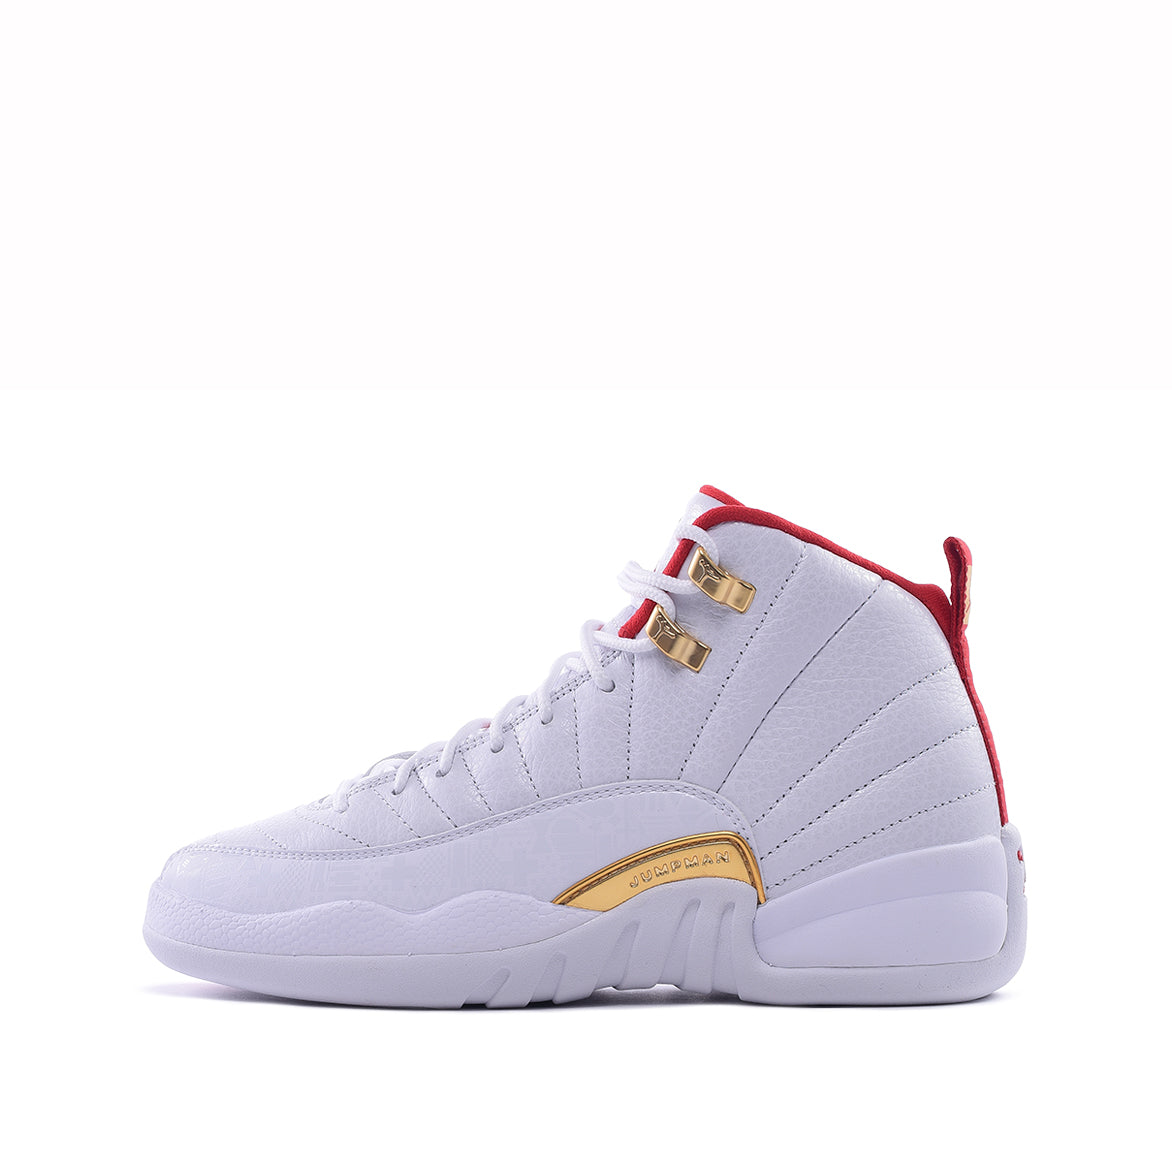 premium selection 2041d b6b86 AIR JORDAN 12 RETRO (GS)